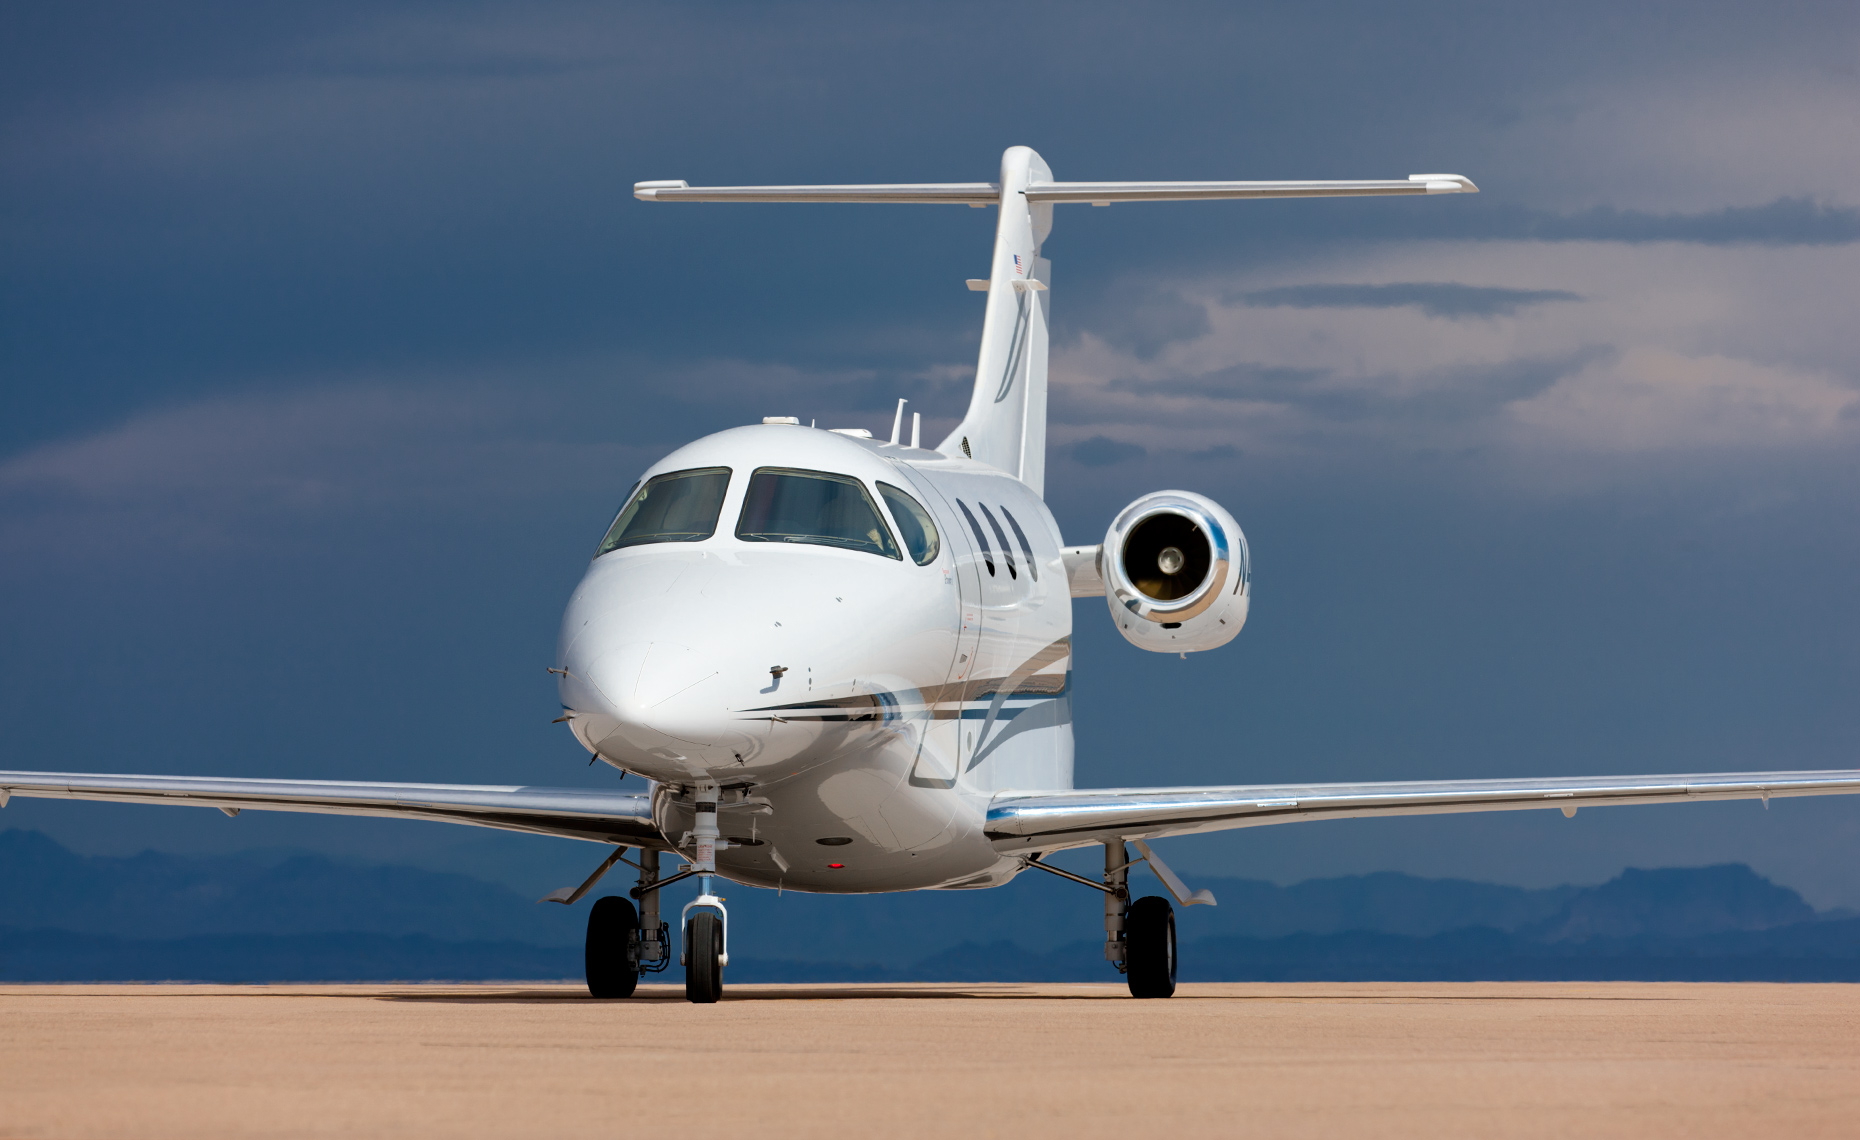 Beech Premier Private Business Jet